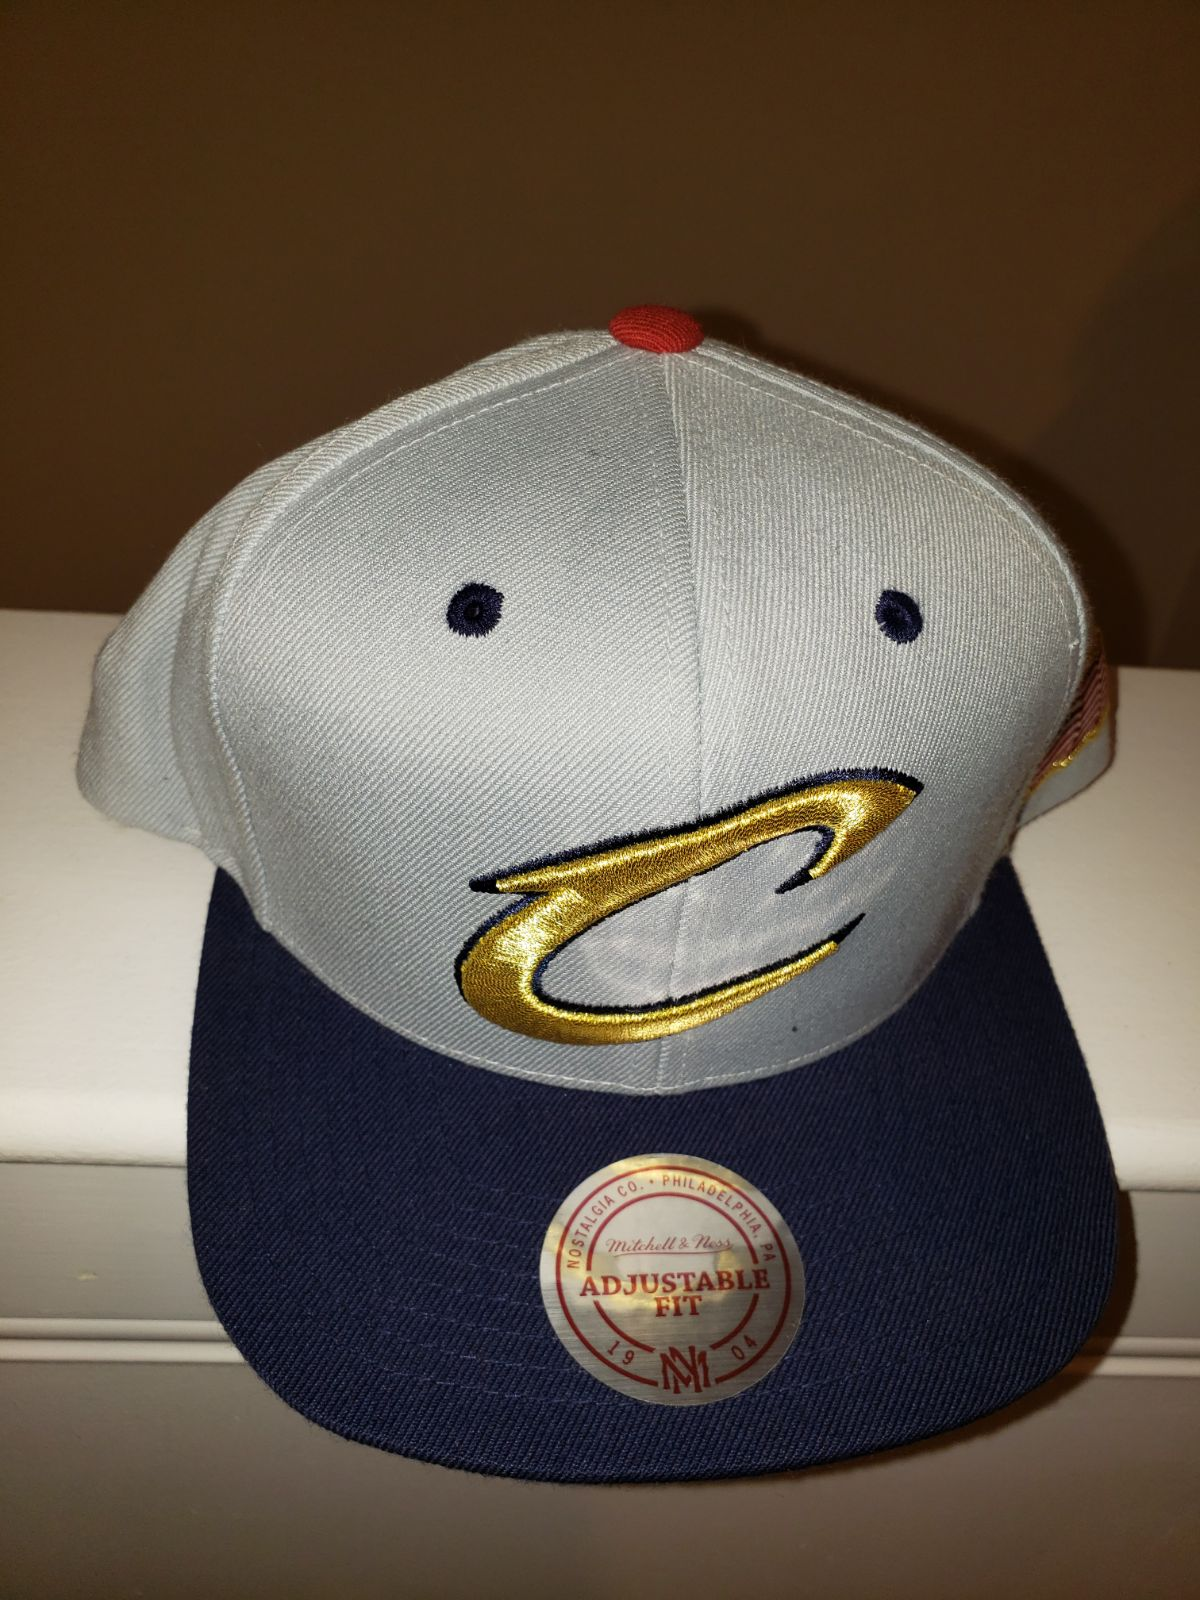 New, MITCHELL & NESS Cleveland hat